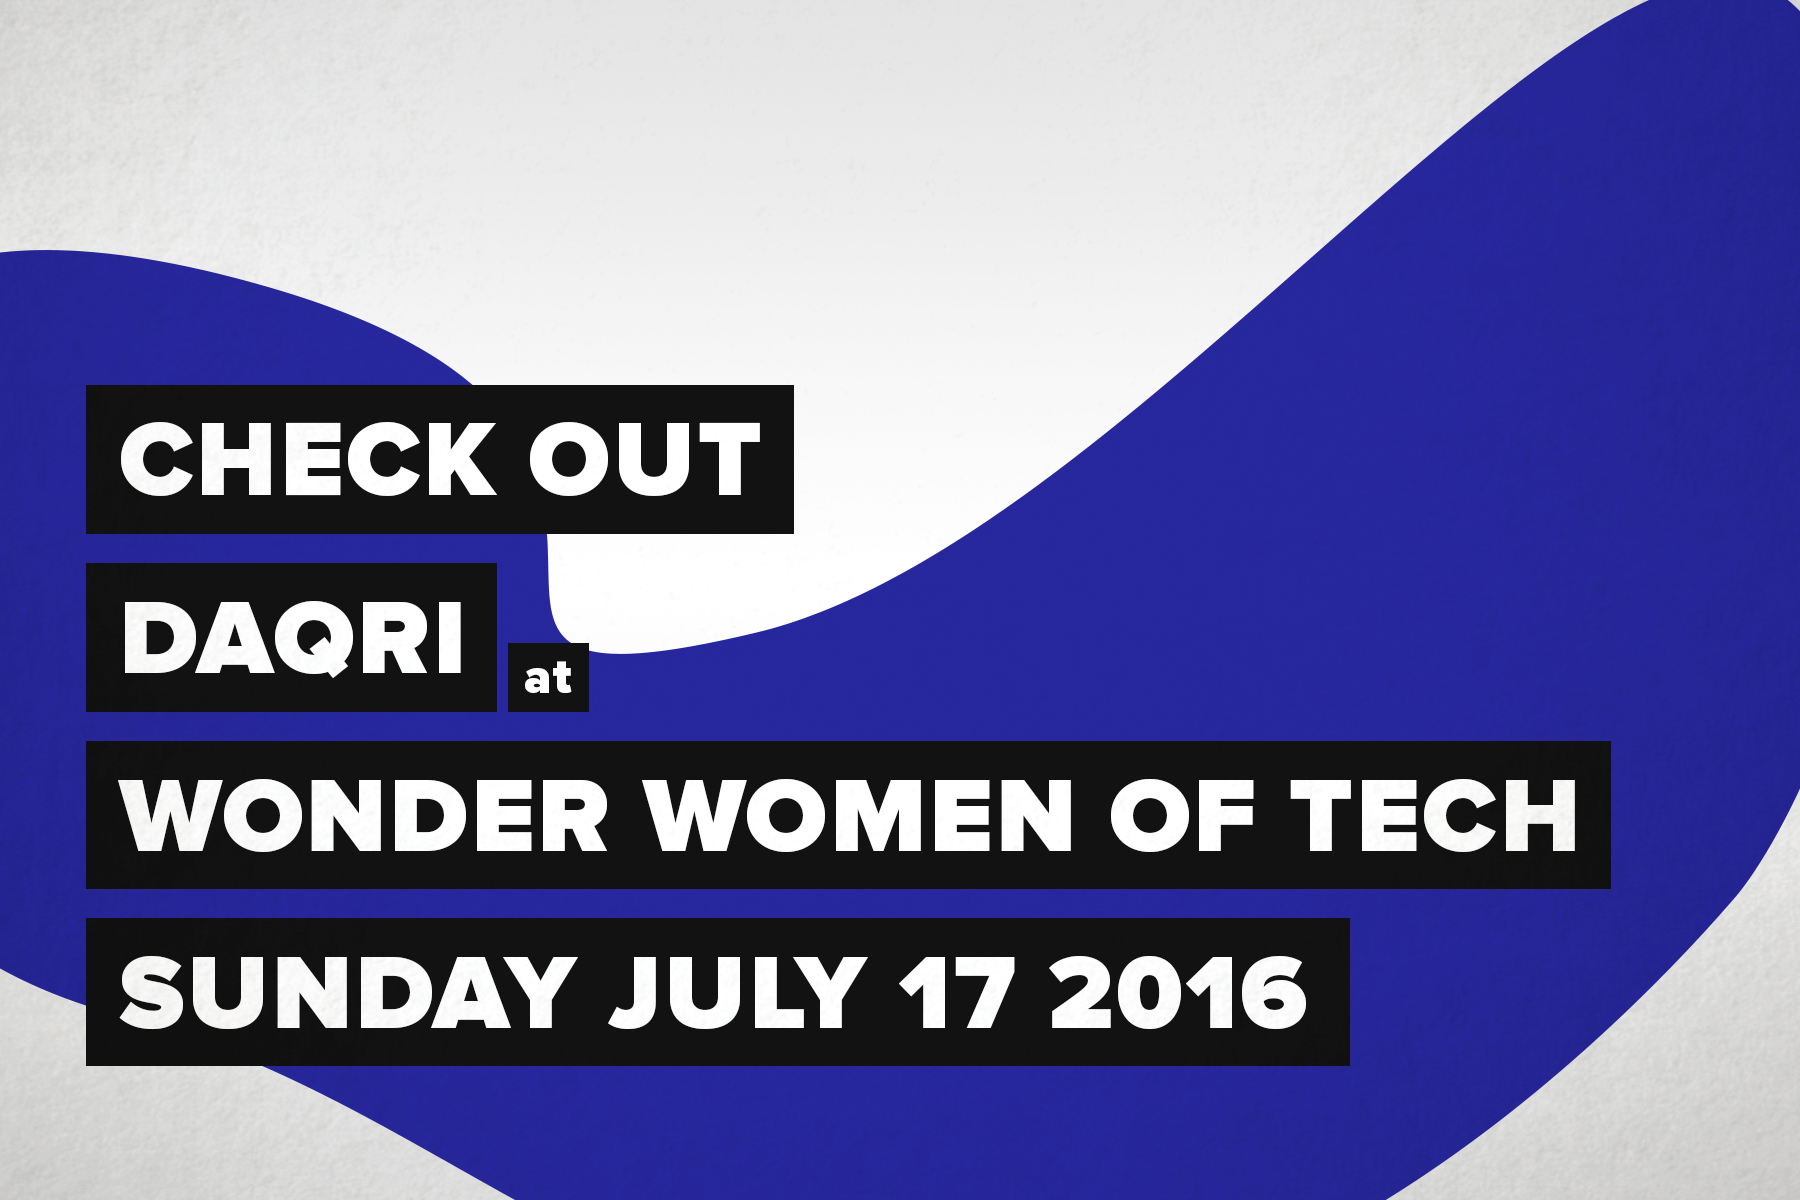 Graphic Design for Wonder Women of Tech,party invite  Created with Photoshop.